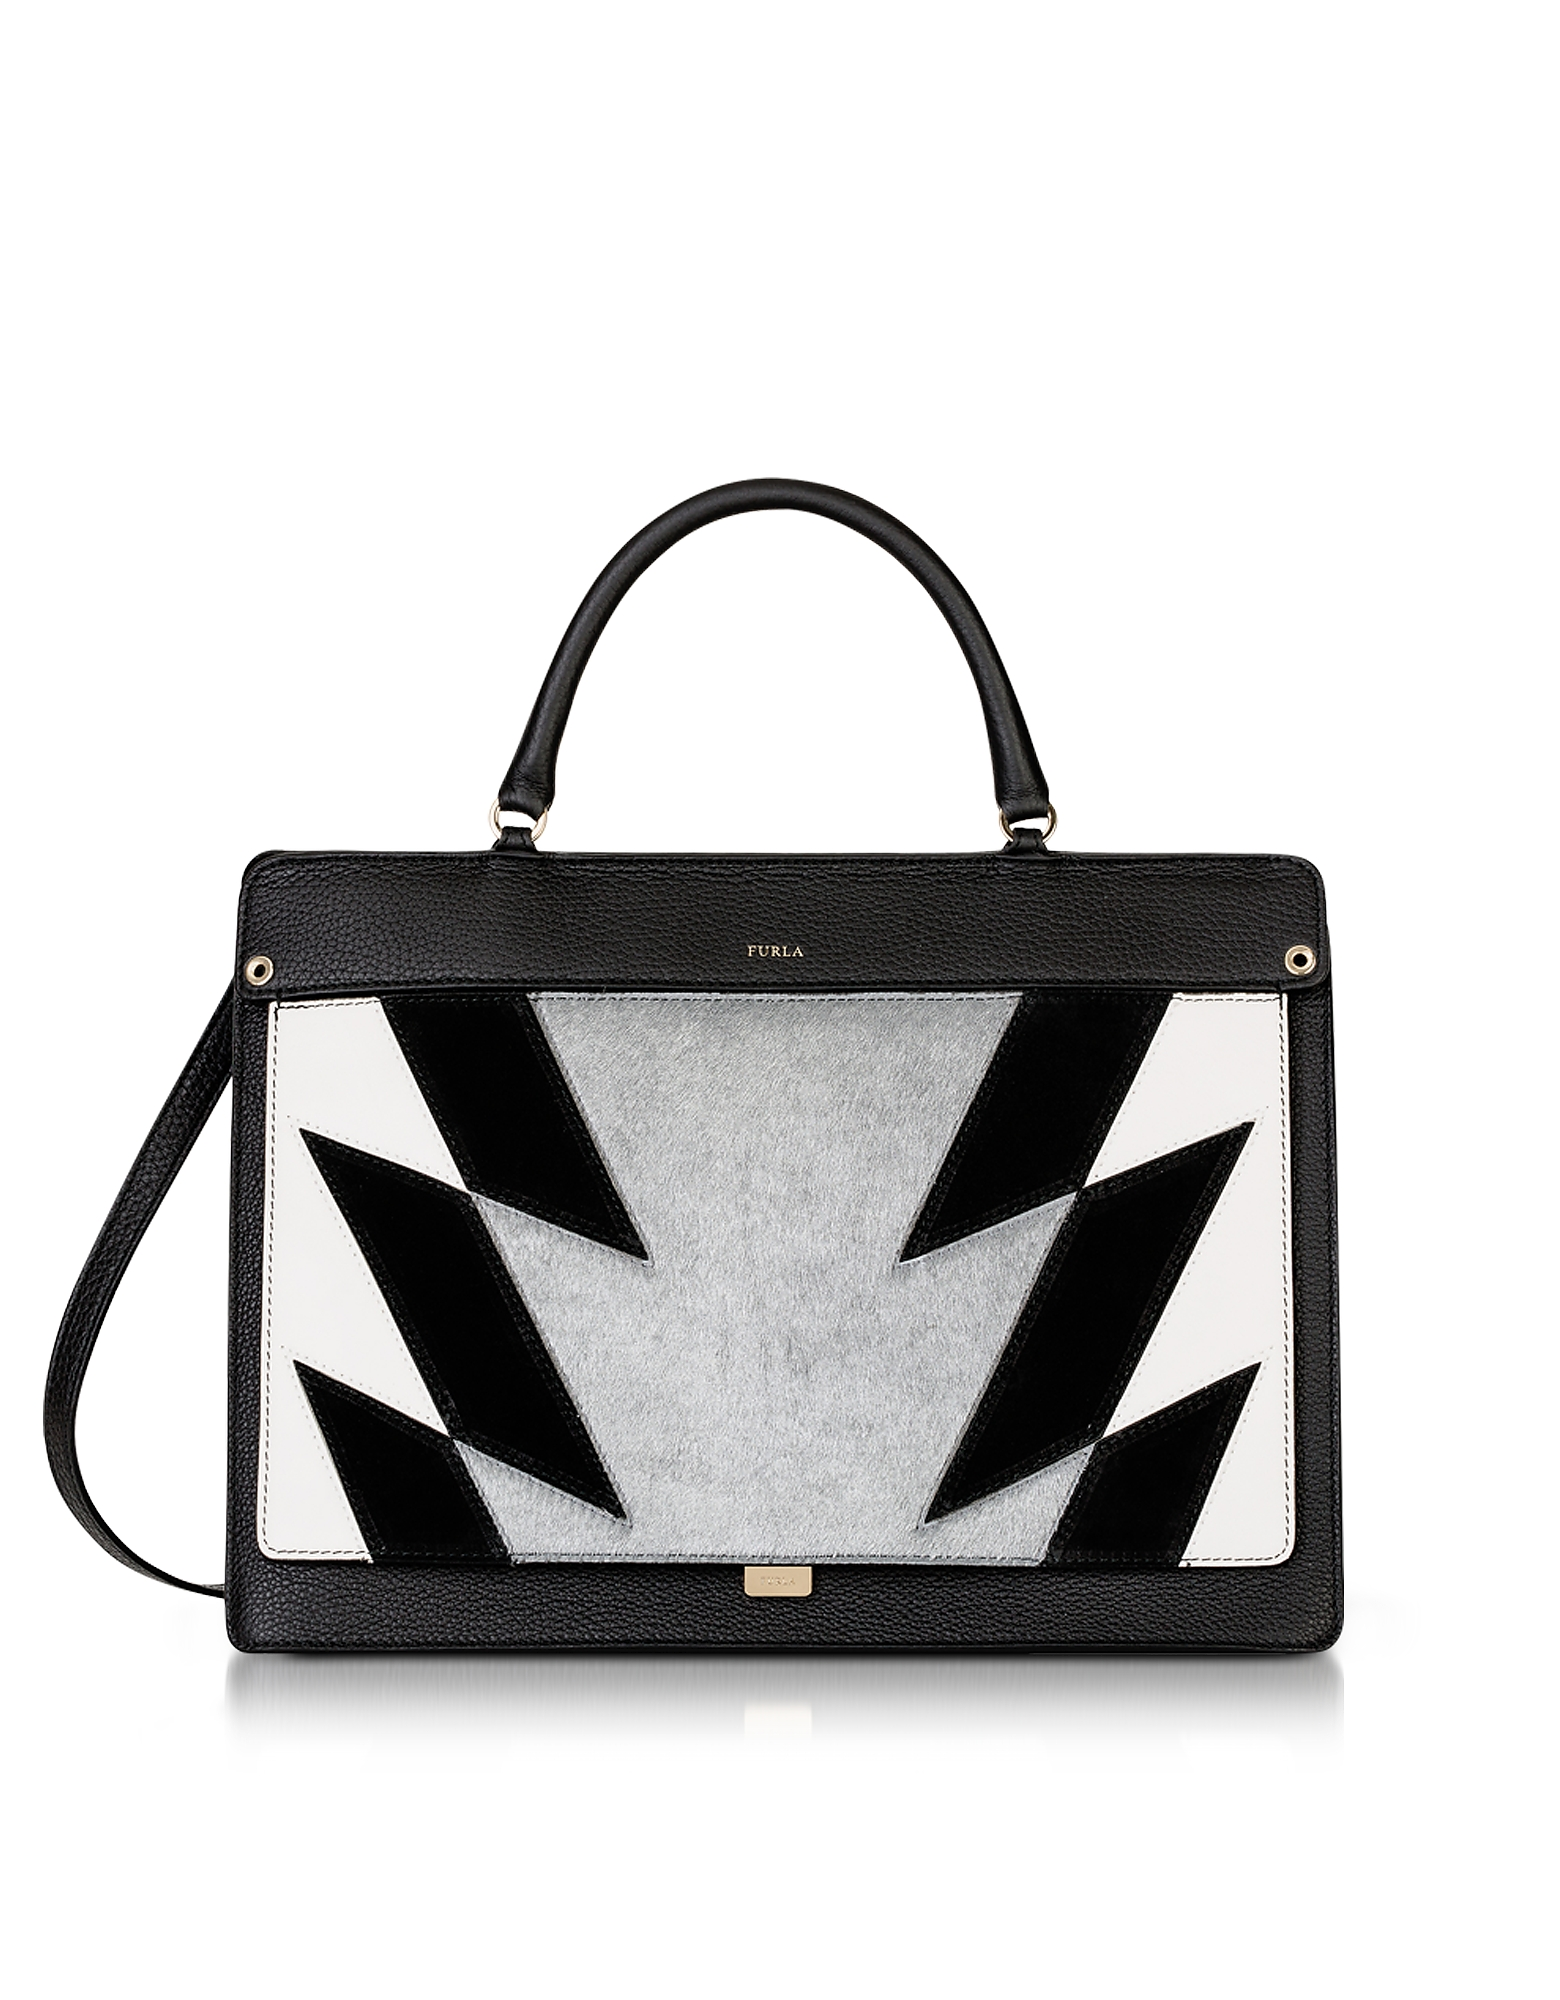 Furla Onyx Leather And Silver Haircalf Like Medium Top Handle Bag In Dome Small Authentic